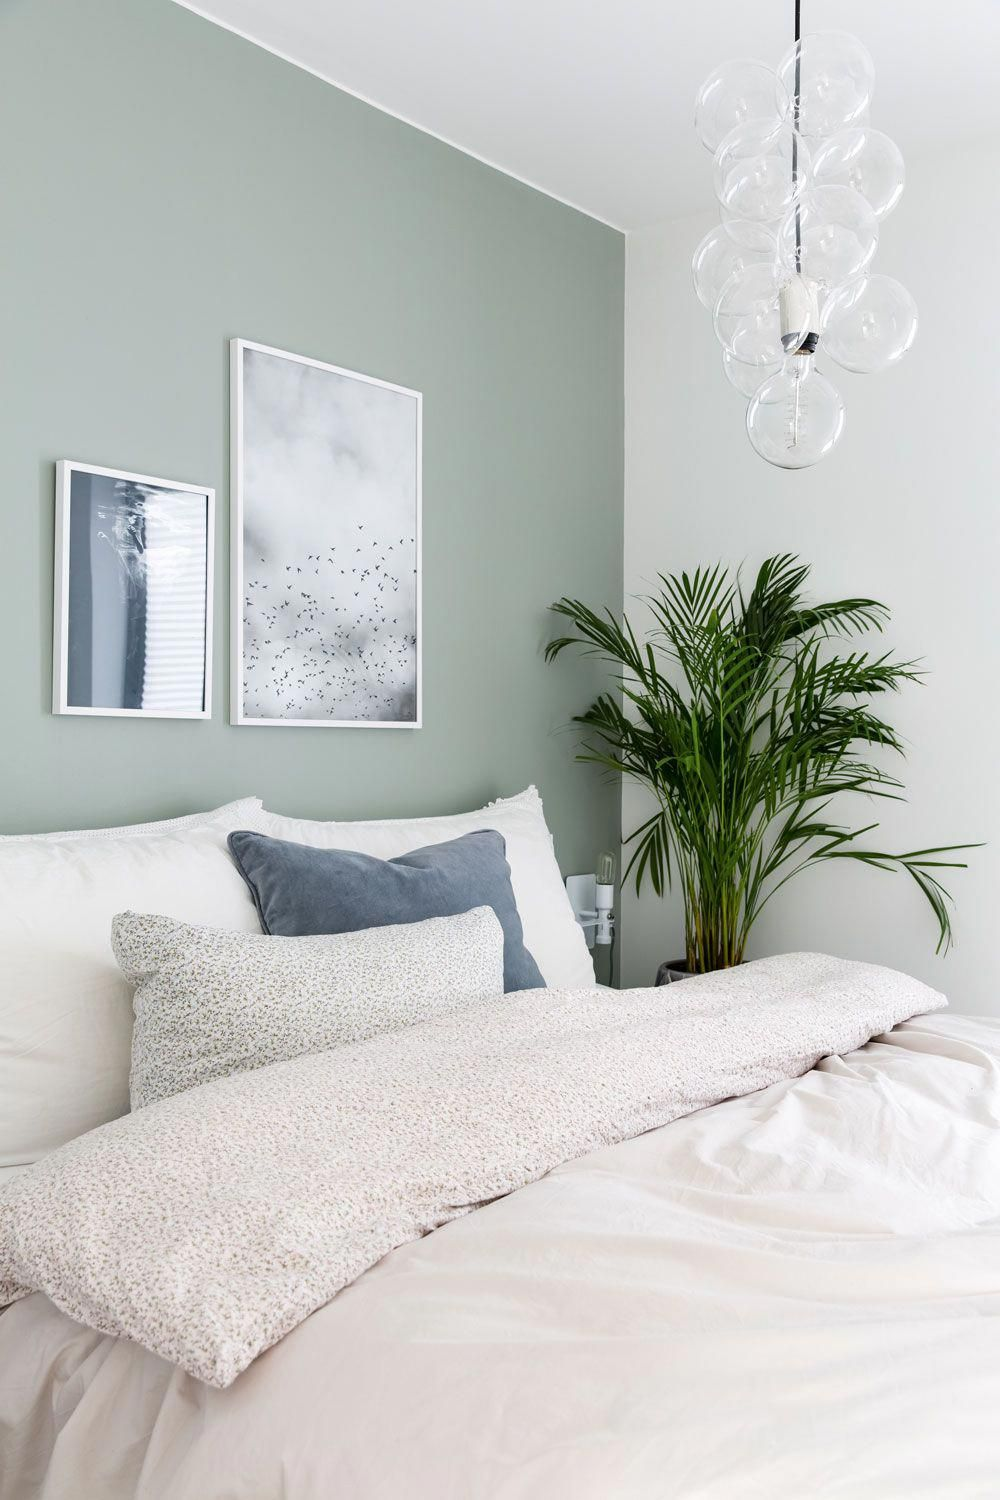 Neutral minimal bedroom decor with white bedding and pale ... on Neutral Minimalist Bedroom Ideas  id=71401